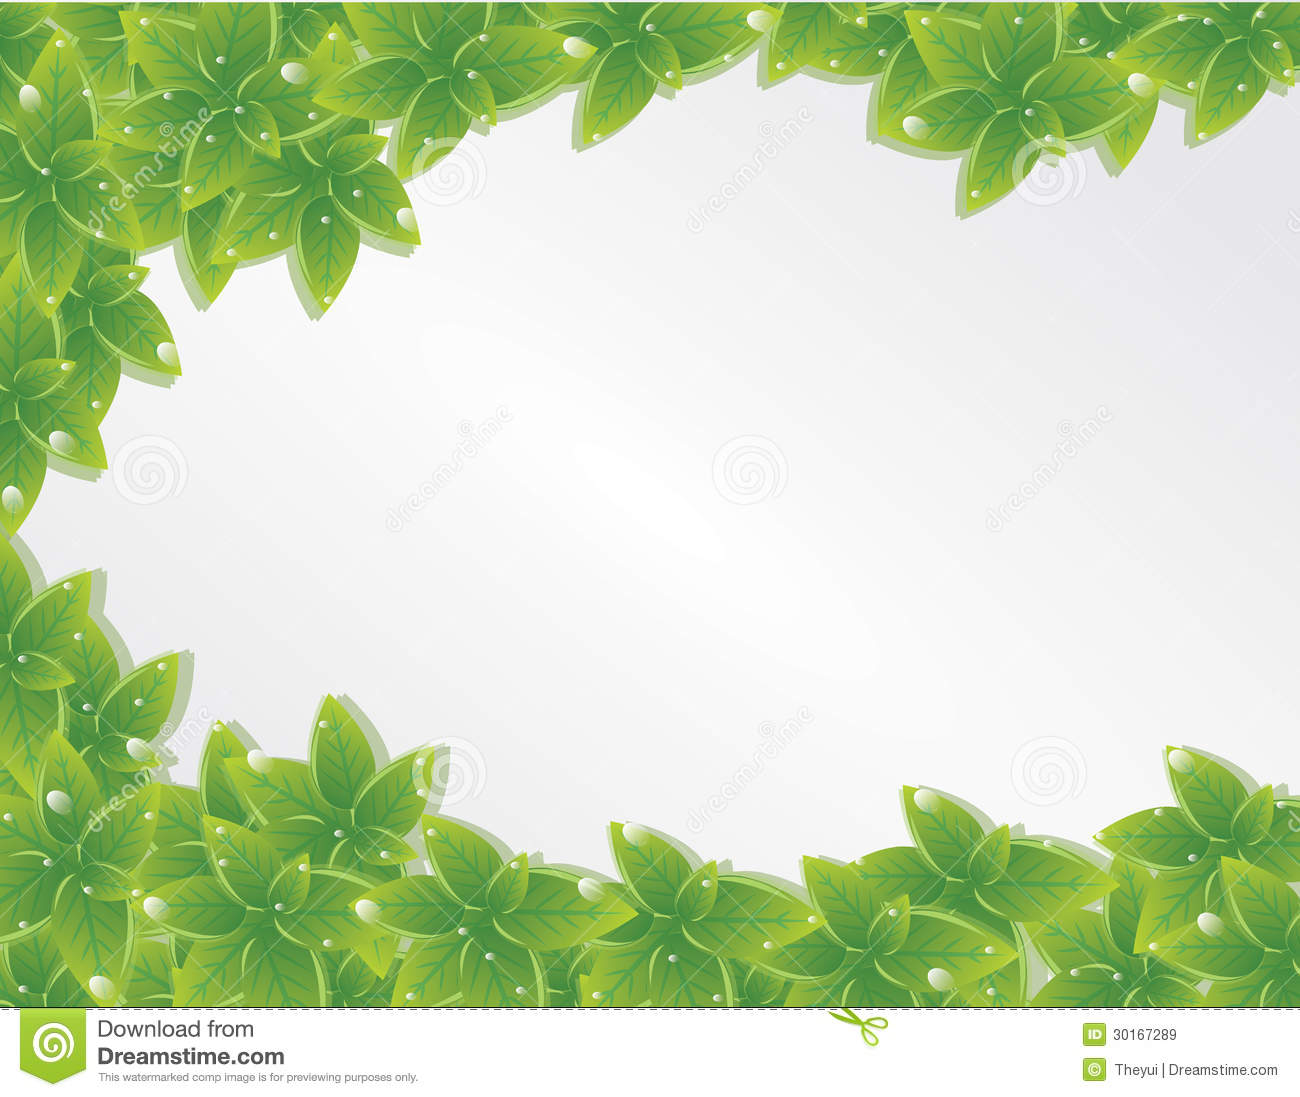 Leaf Texture Vector